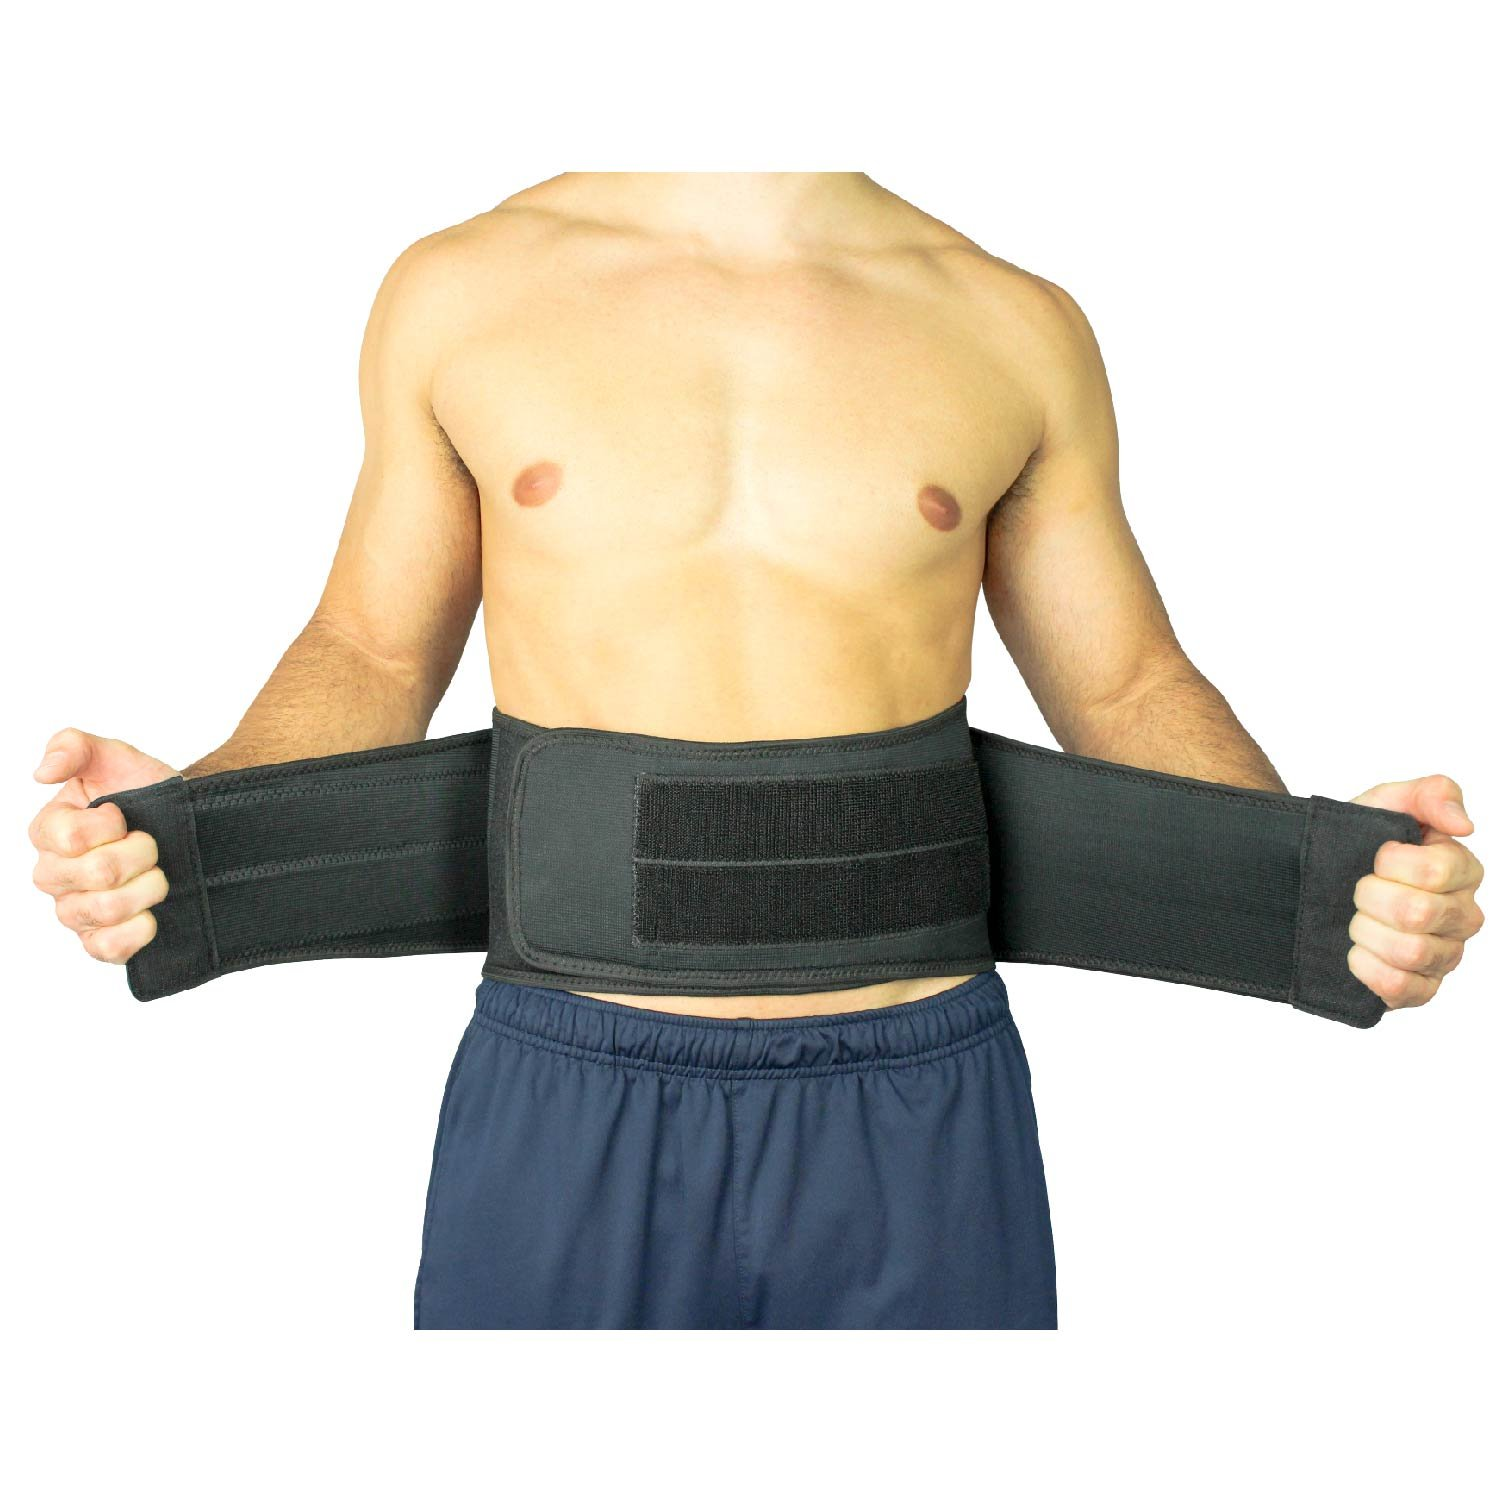 Back Brace by Vive - Lower Support for Chronic Pain, Sciatica, Spasms, Nerve and Herniated or Slipped Disc - Adjustable Lumbar Wrap for Pain Management and Relief